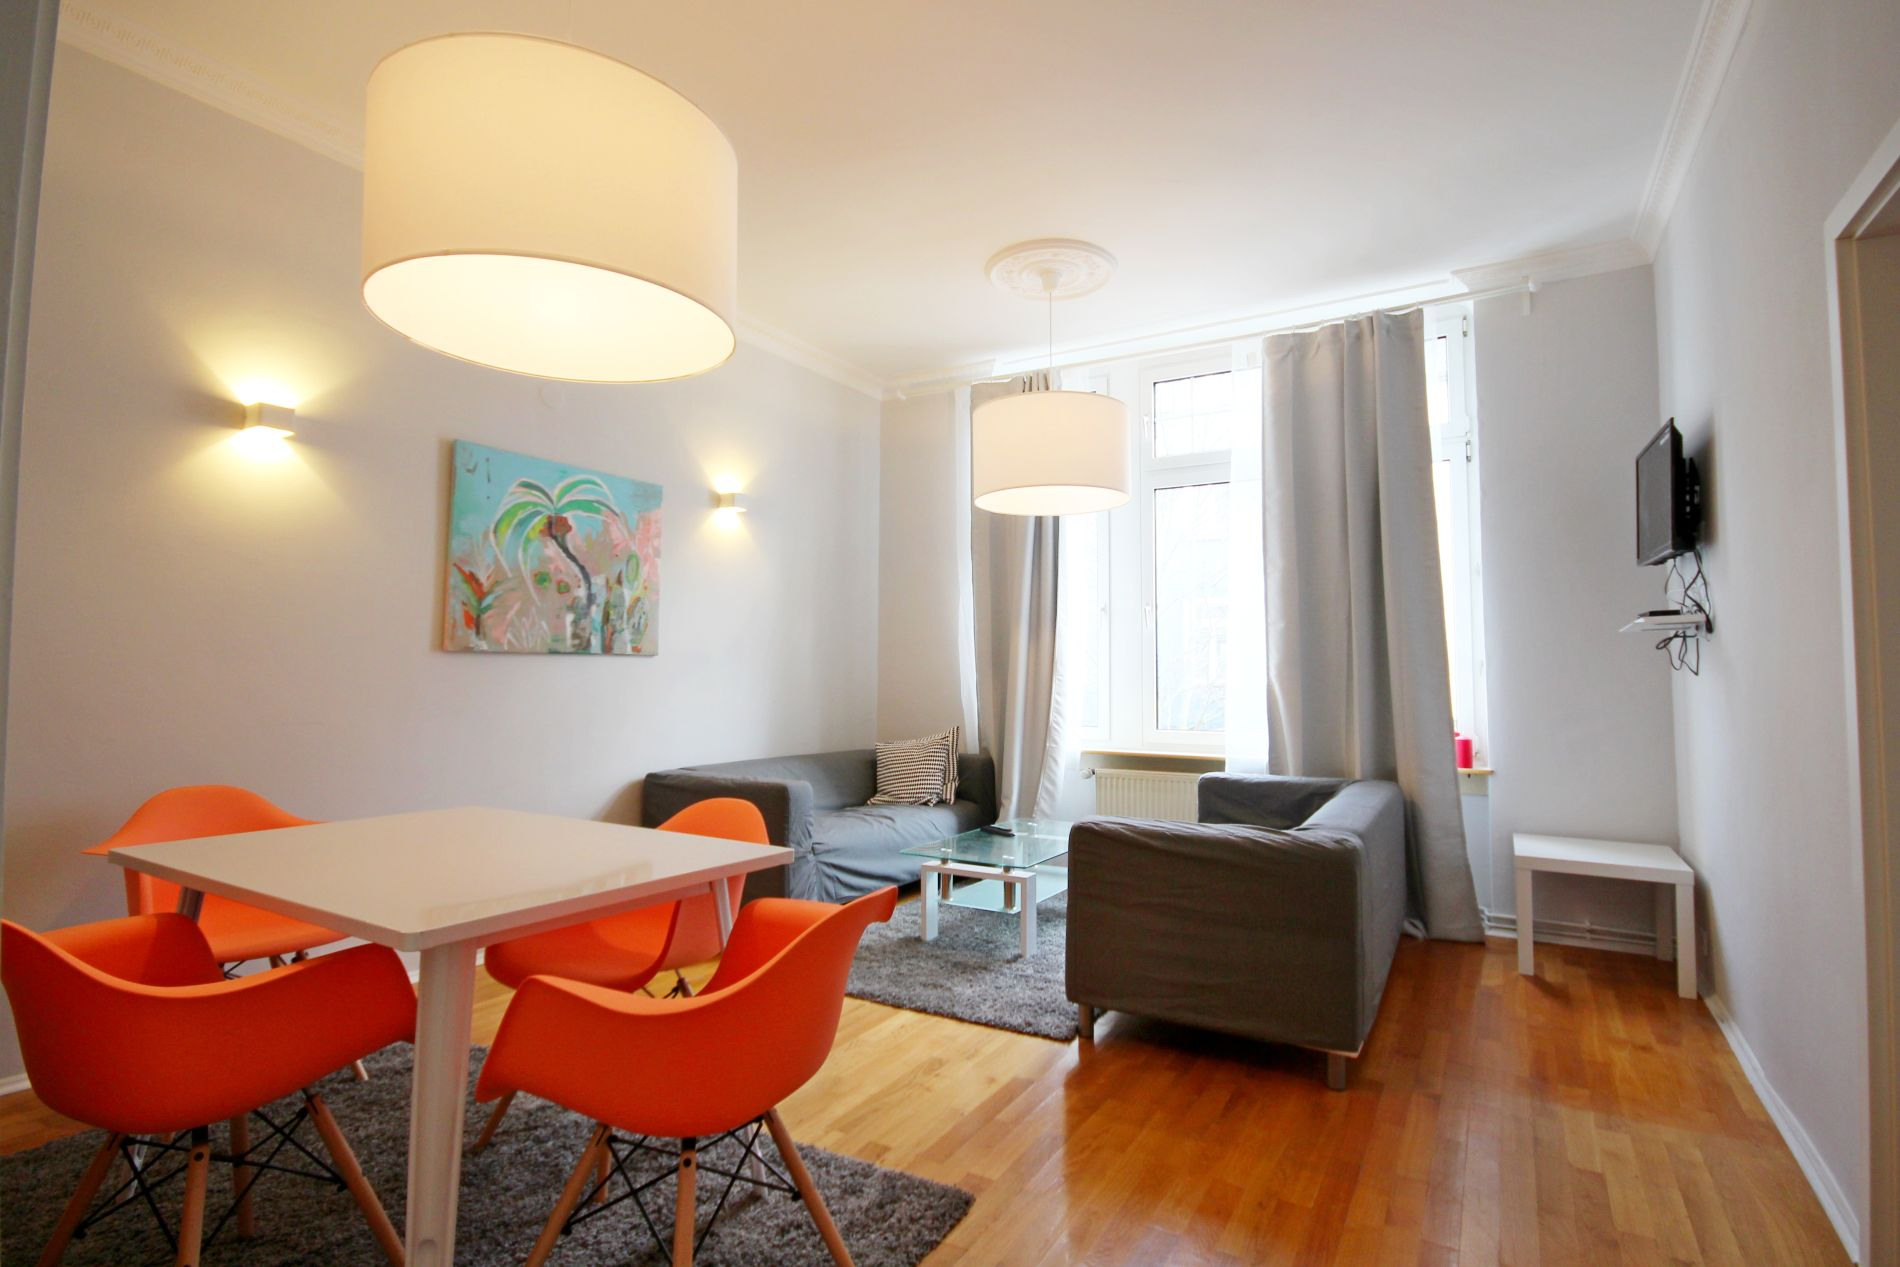 Renovated Serviced Apartment in Gallusviertel, Frankfurt suitable for families with children